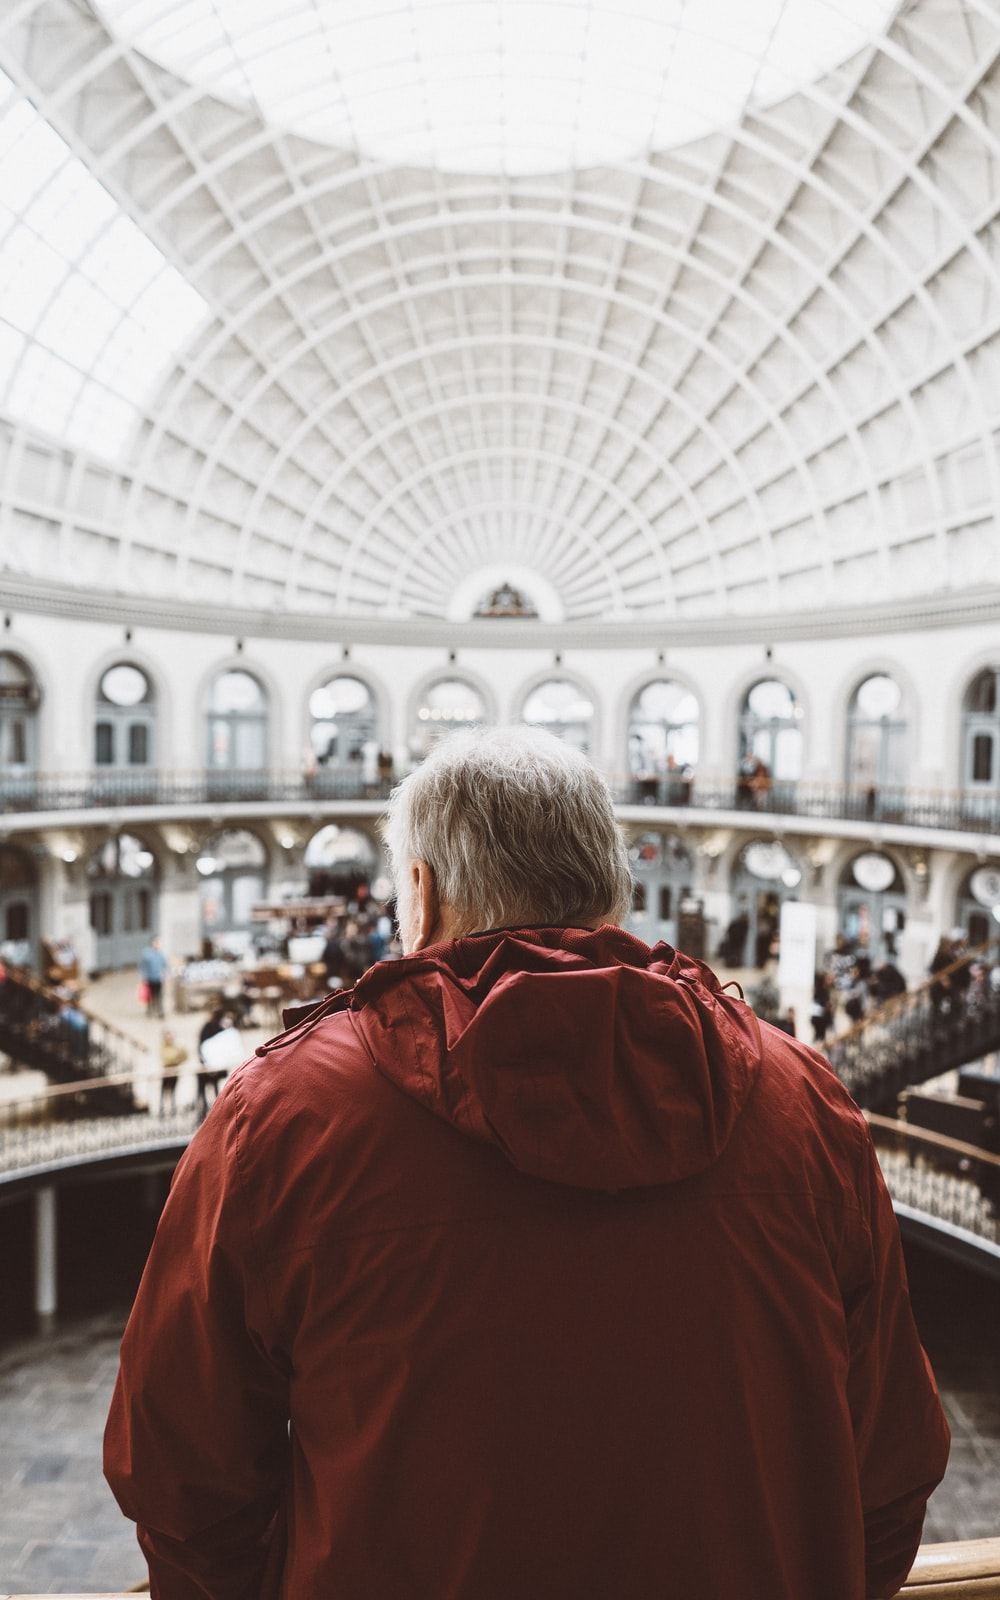 man wearing red hoodie inside dome building in front of people